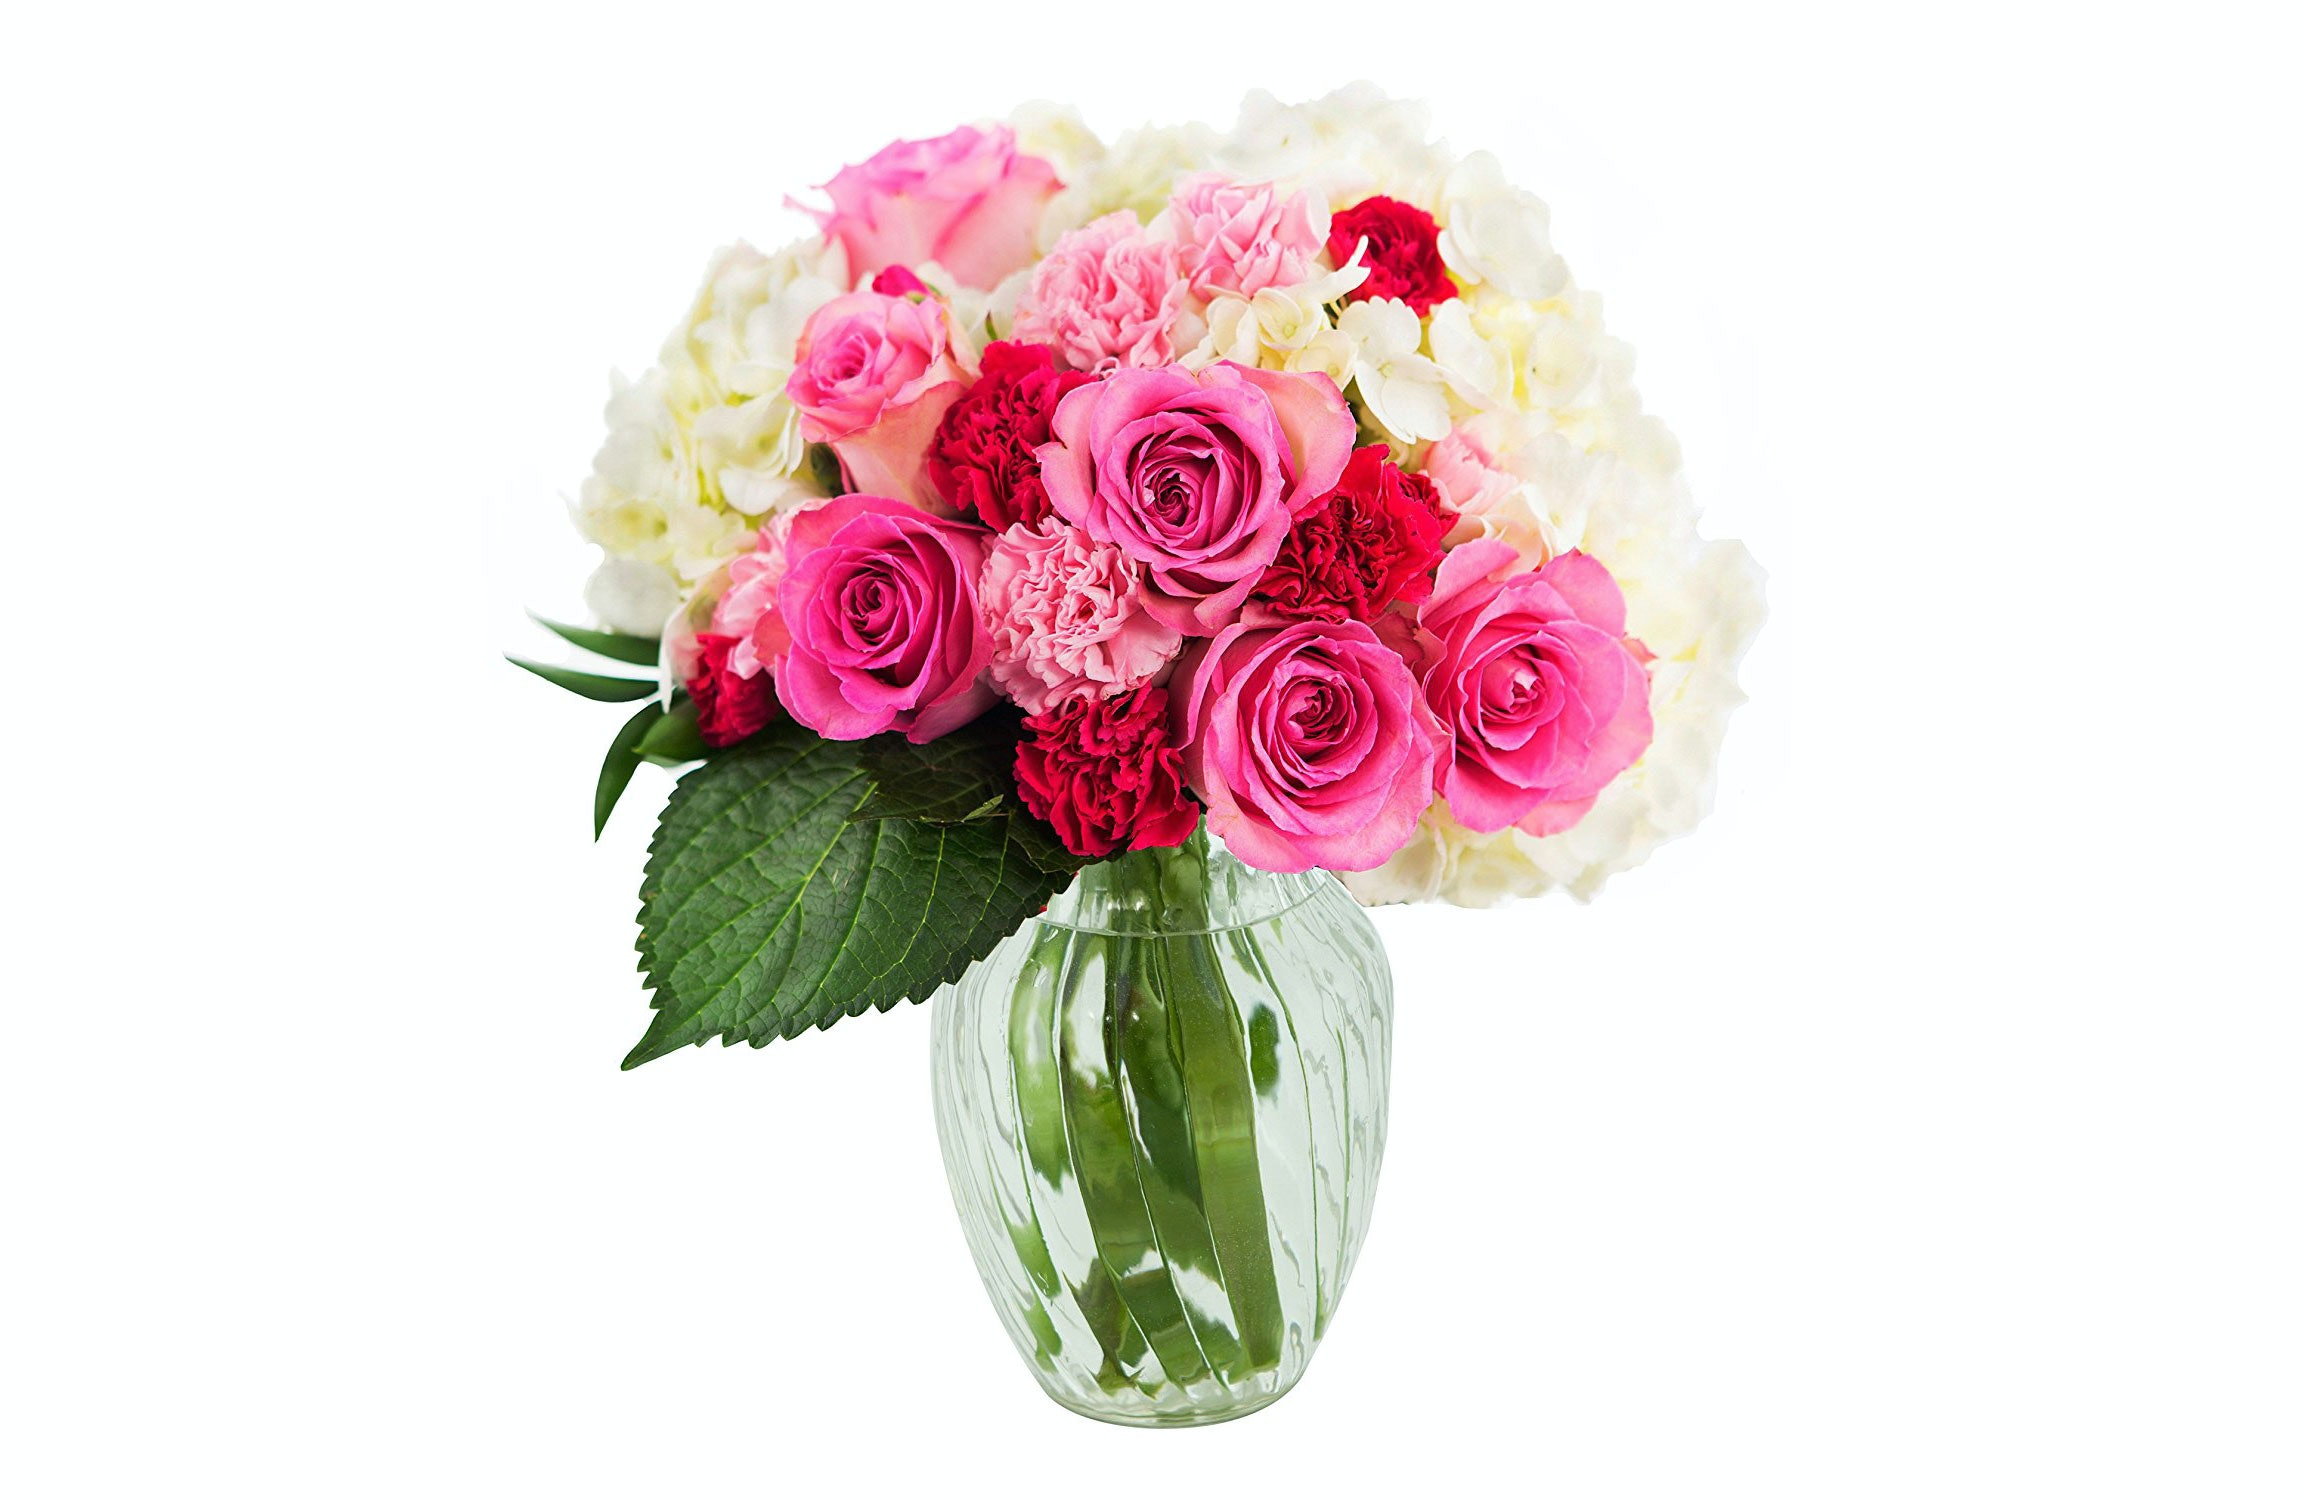 The 7 best flower bouquets on amazon for your girlfriend izmirmasajfo